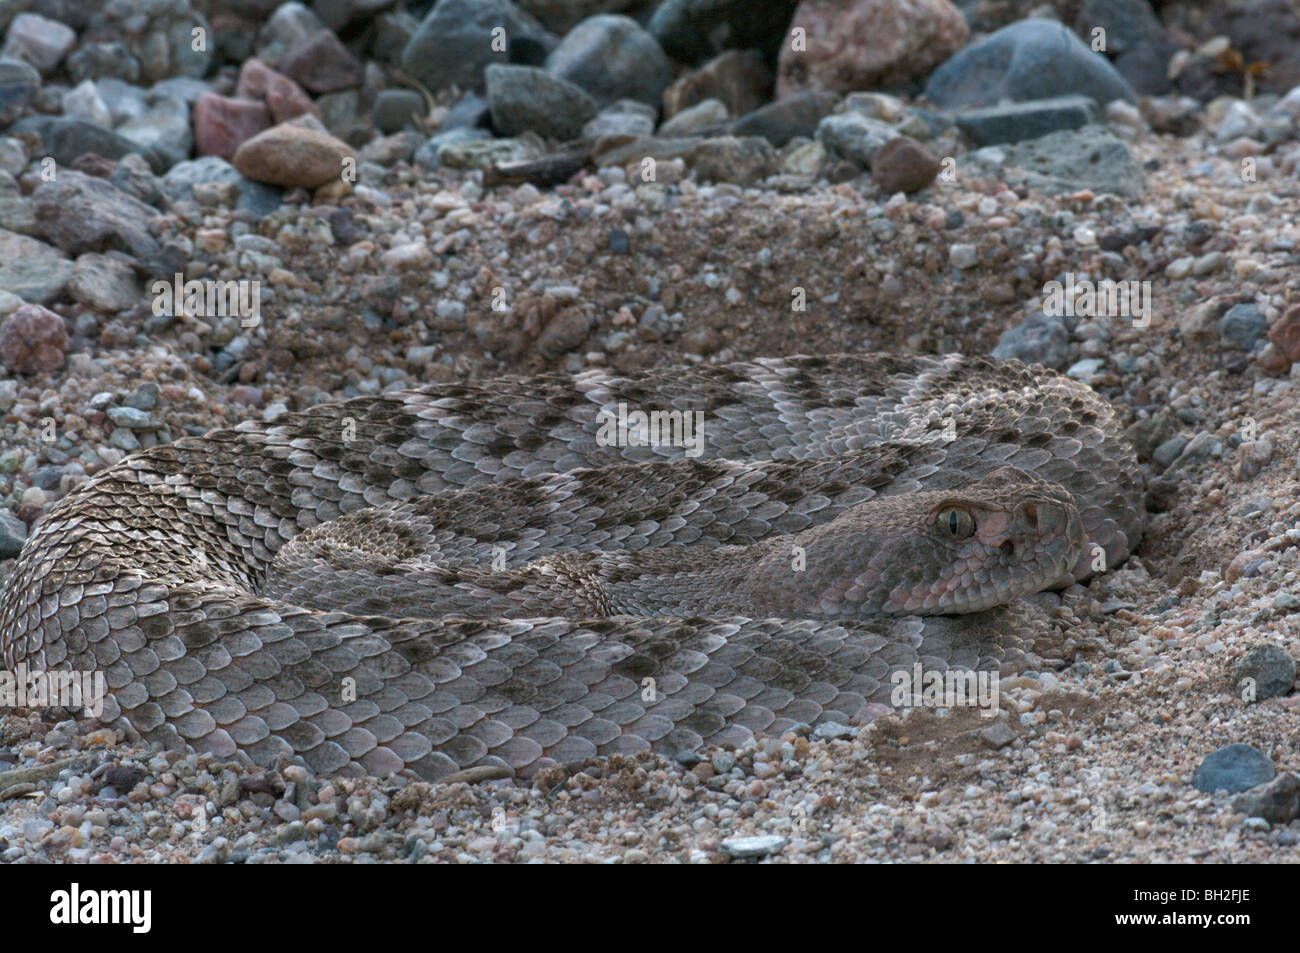 A Western Diamond-backed Rattlesnake (Crotalus atrox) coiled in the sand at dusk. Stock Photo